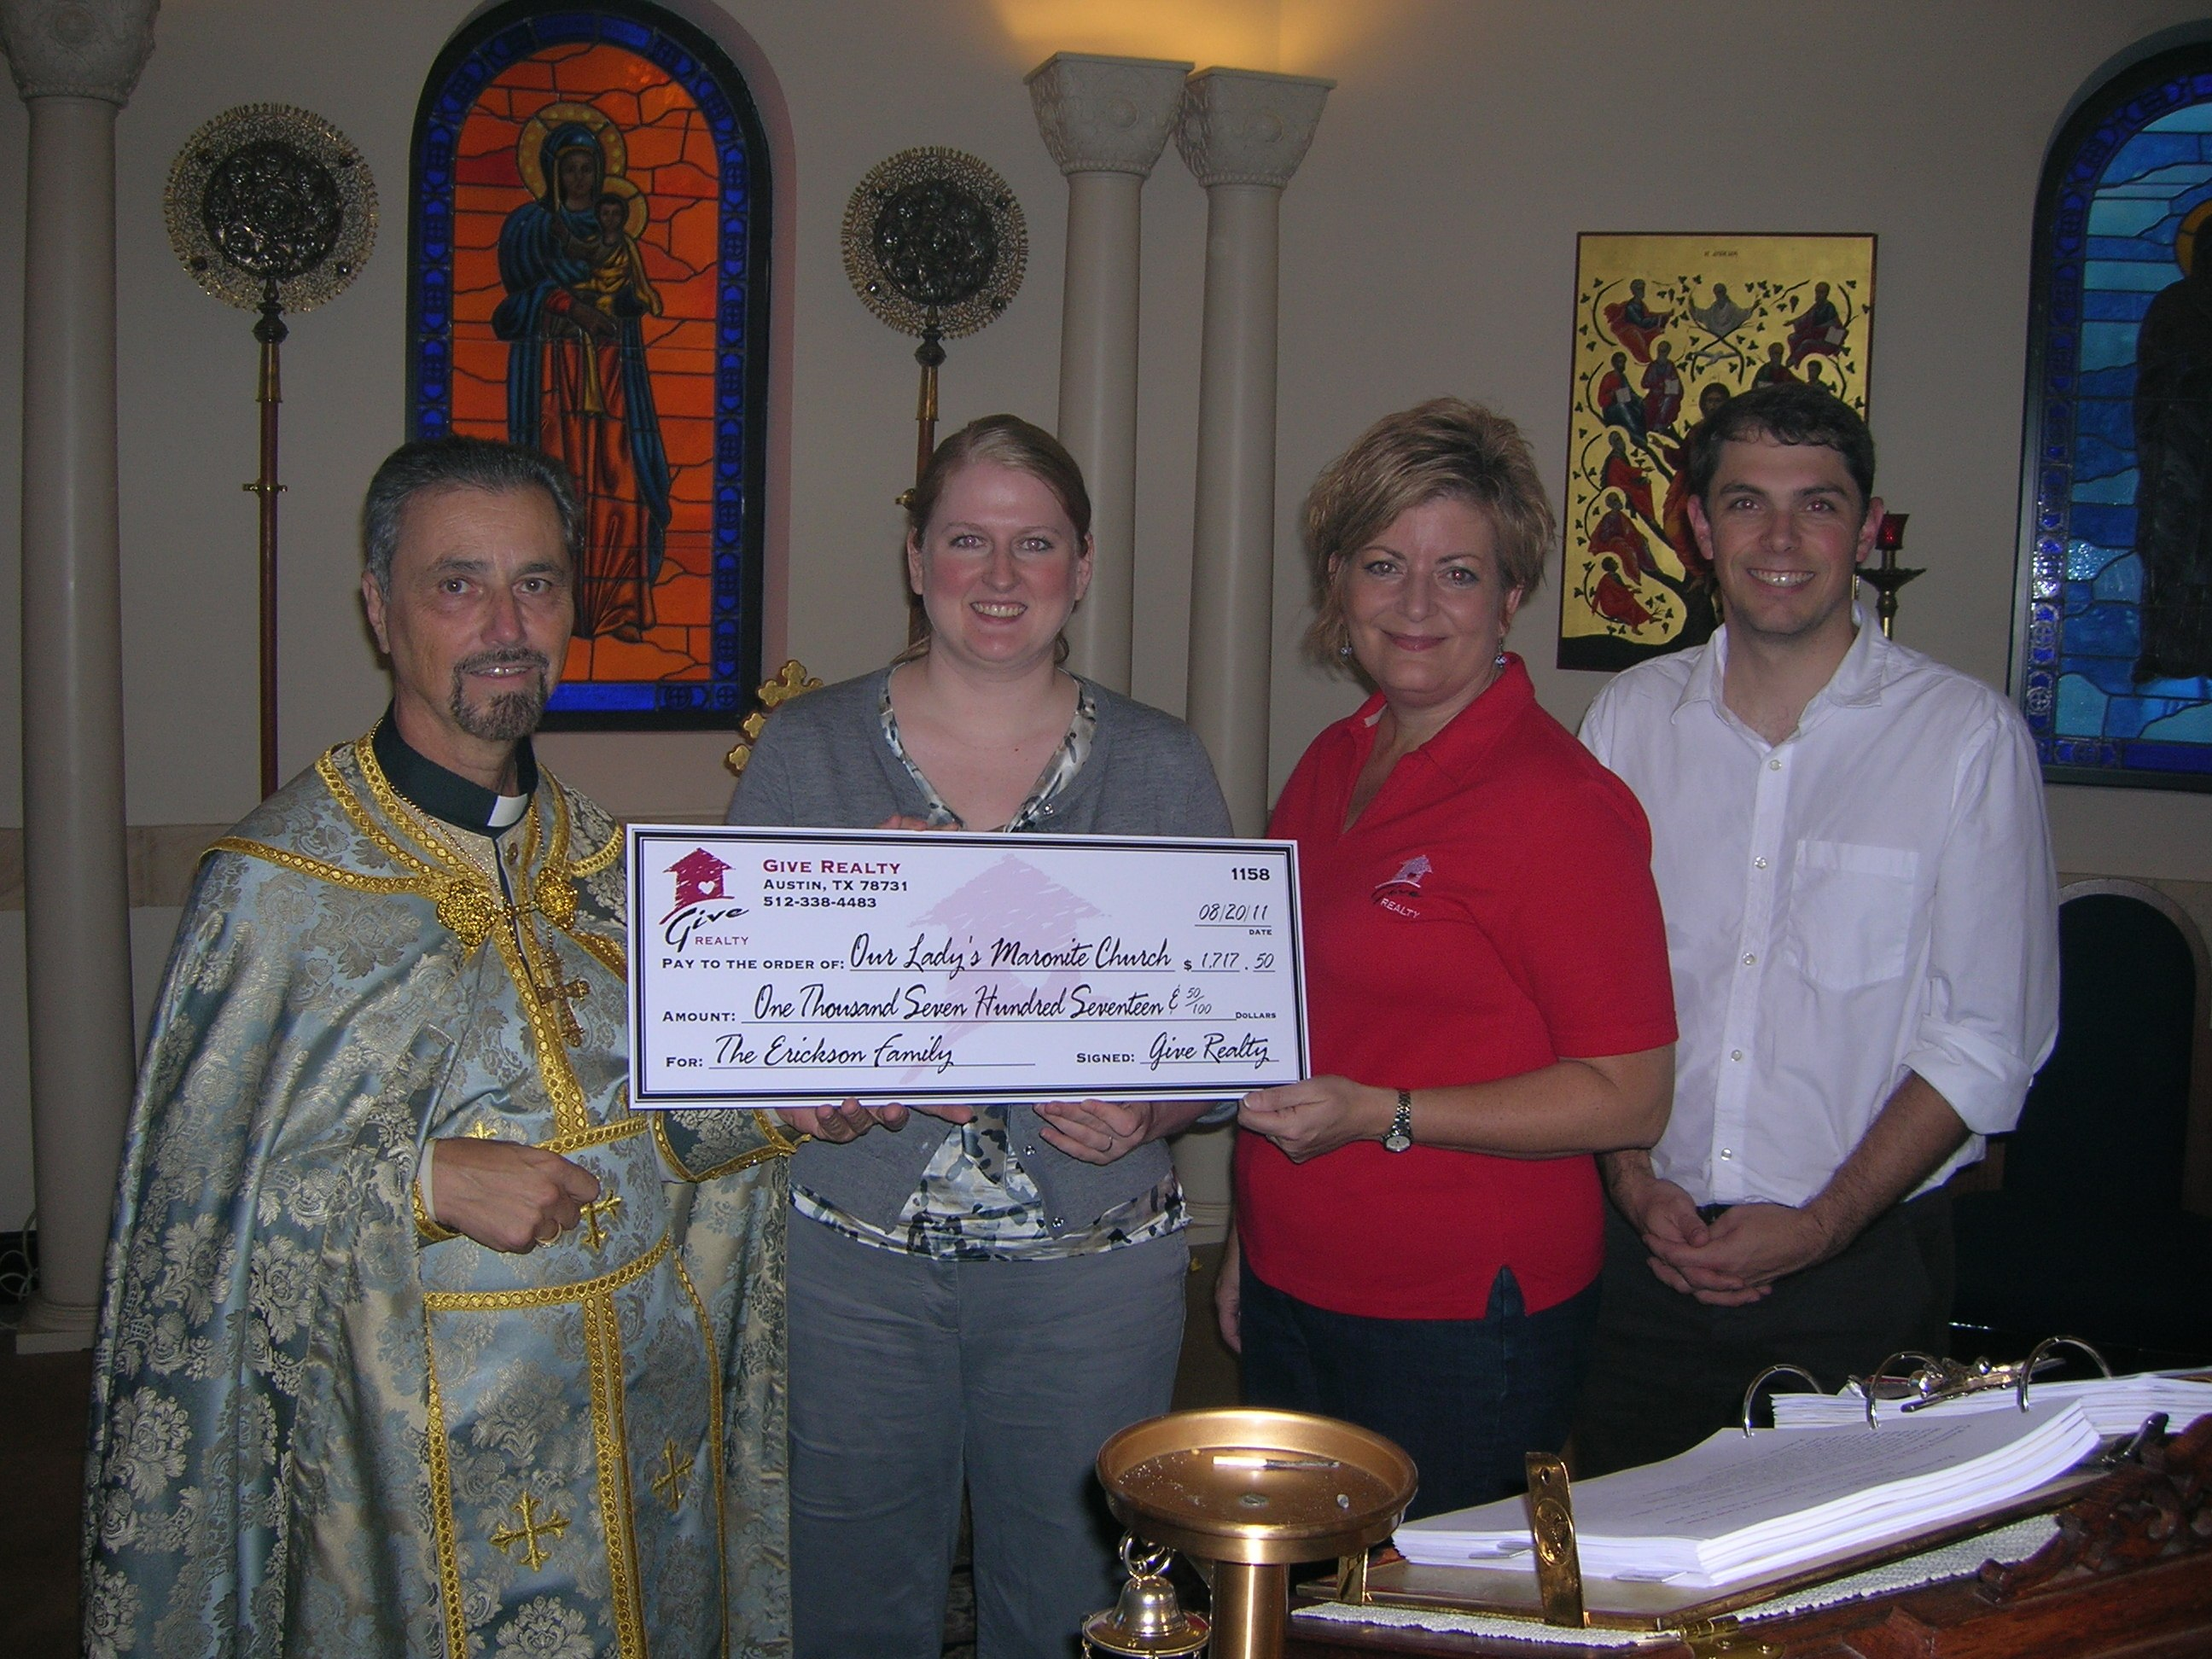 $1,717.50 Donated to Our Lady's Maronite Catholic Church on behalf of the Erickson Family